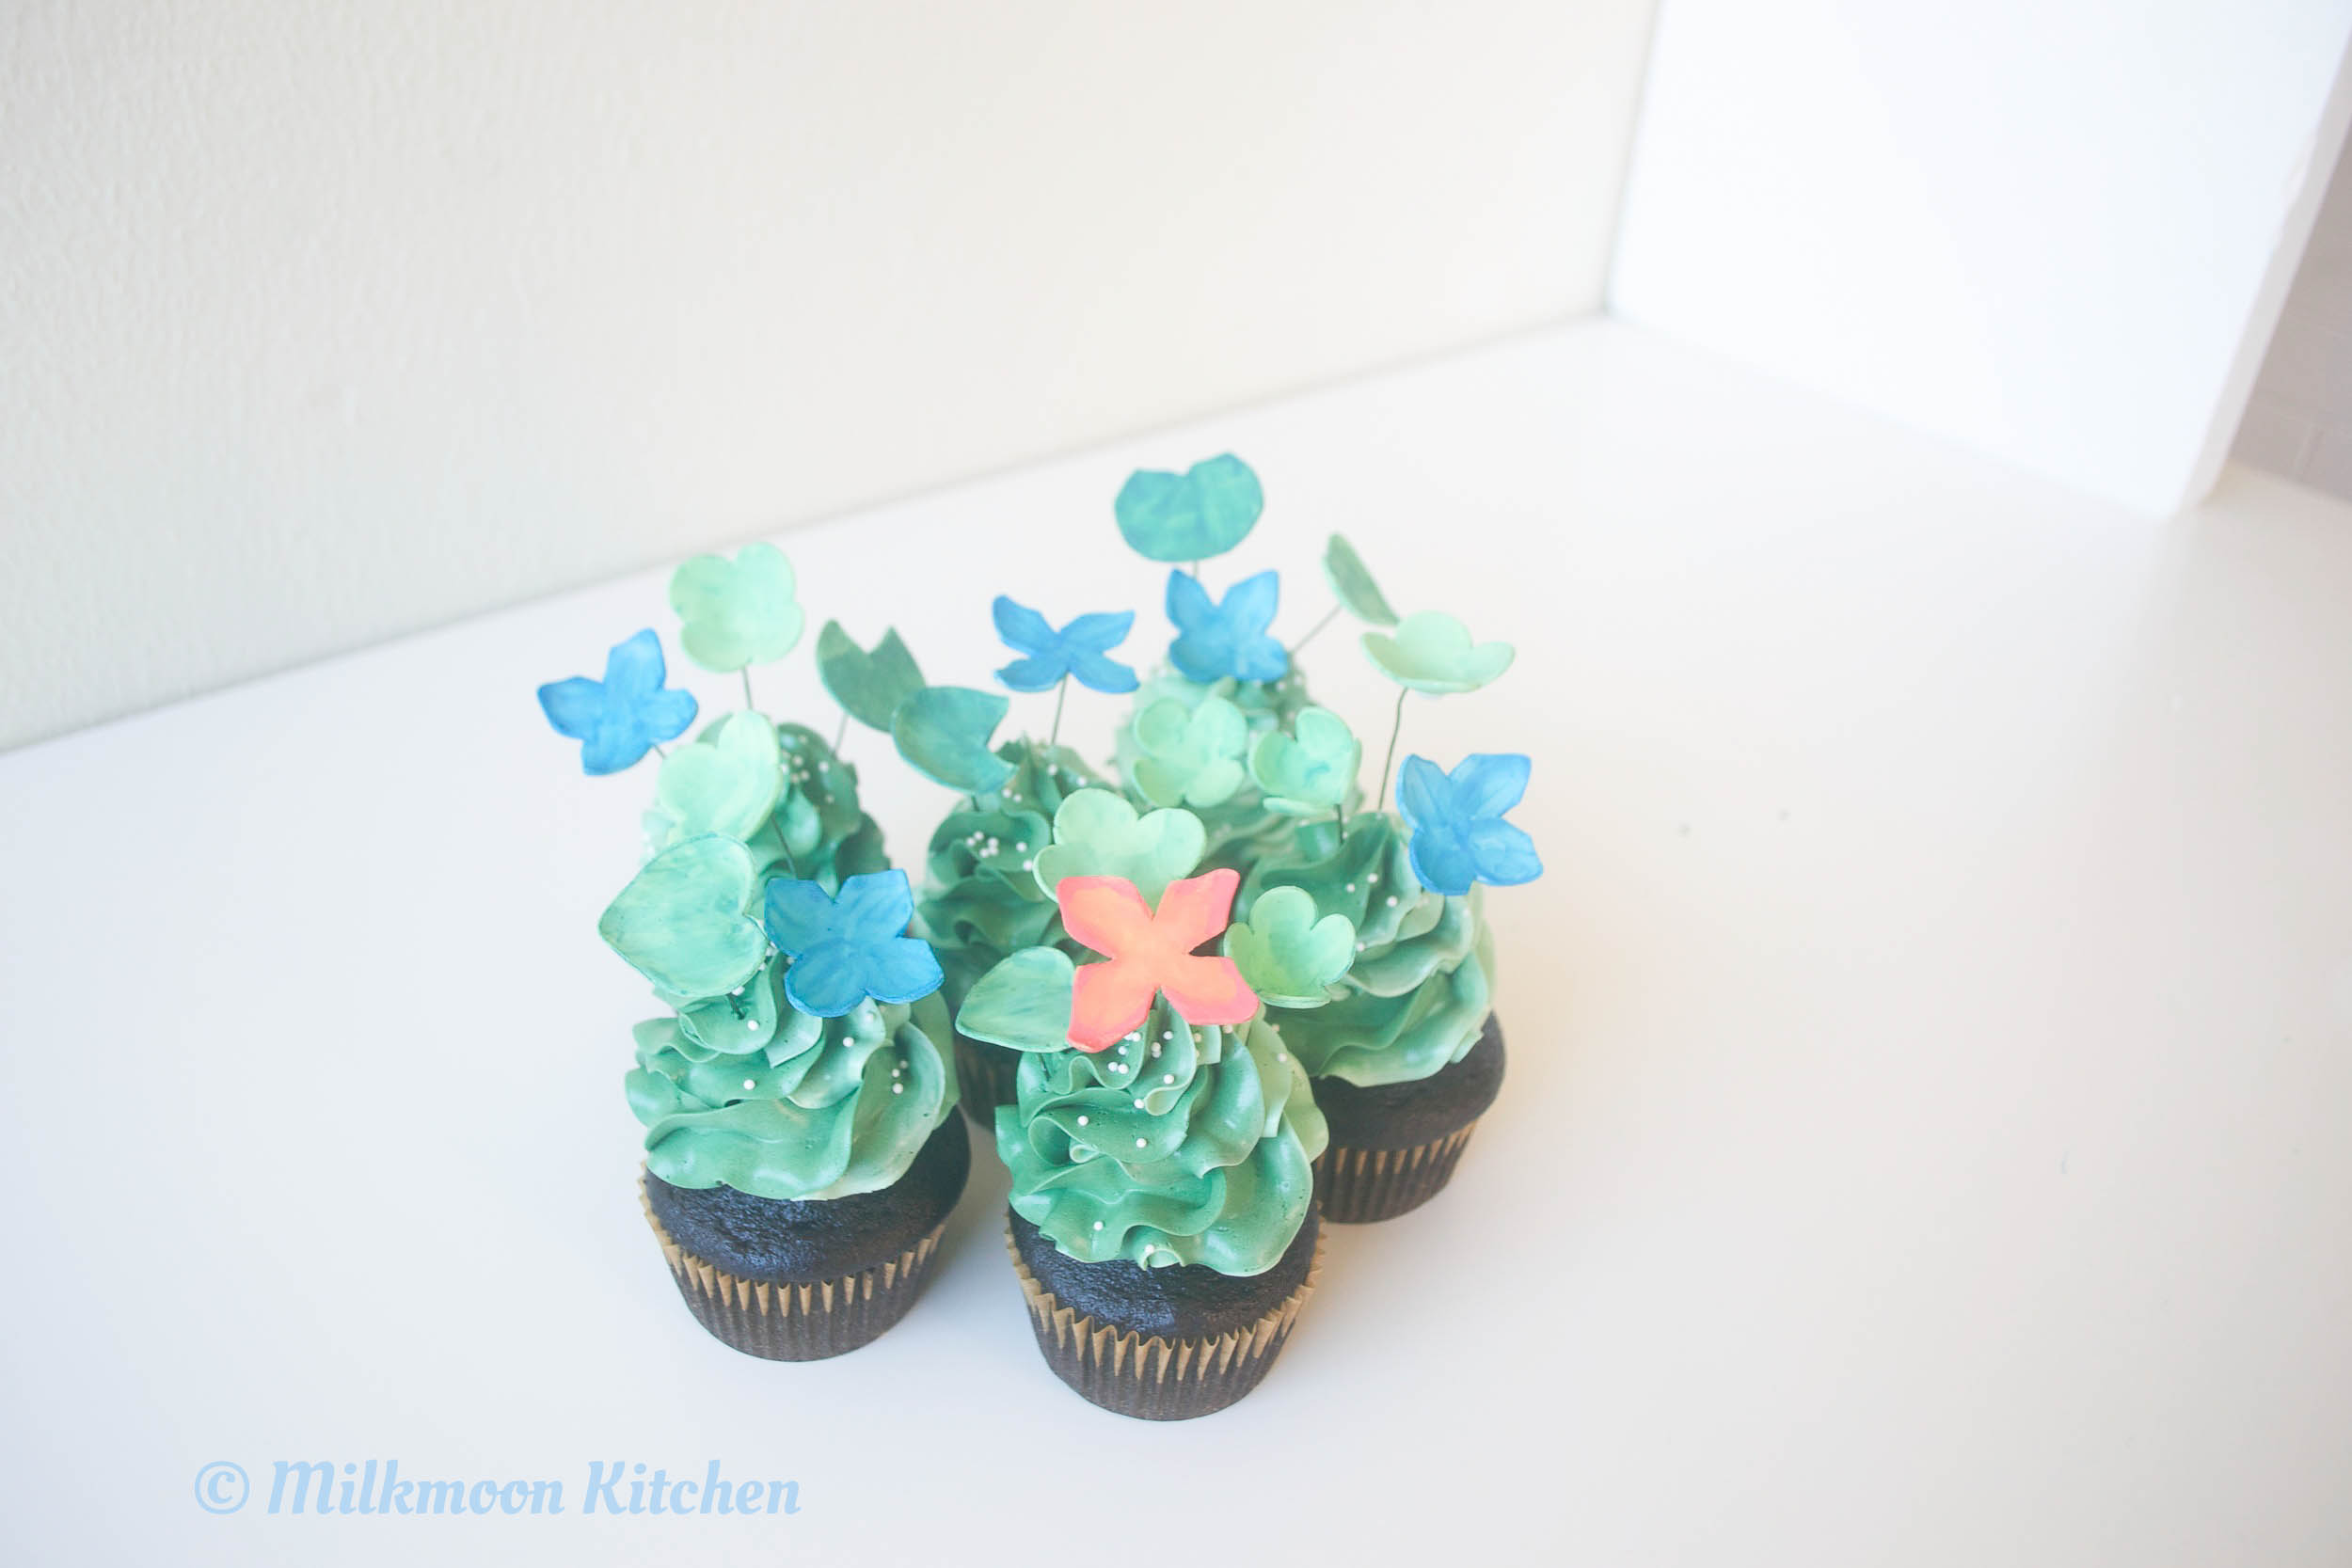 REAL Sprout Cupcakes Edited (5 of 12).jpg